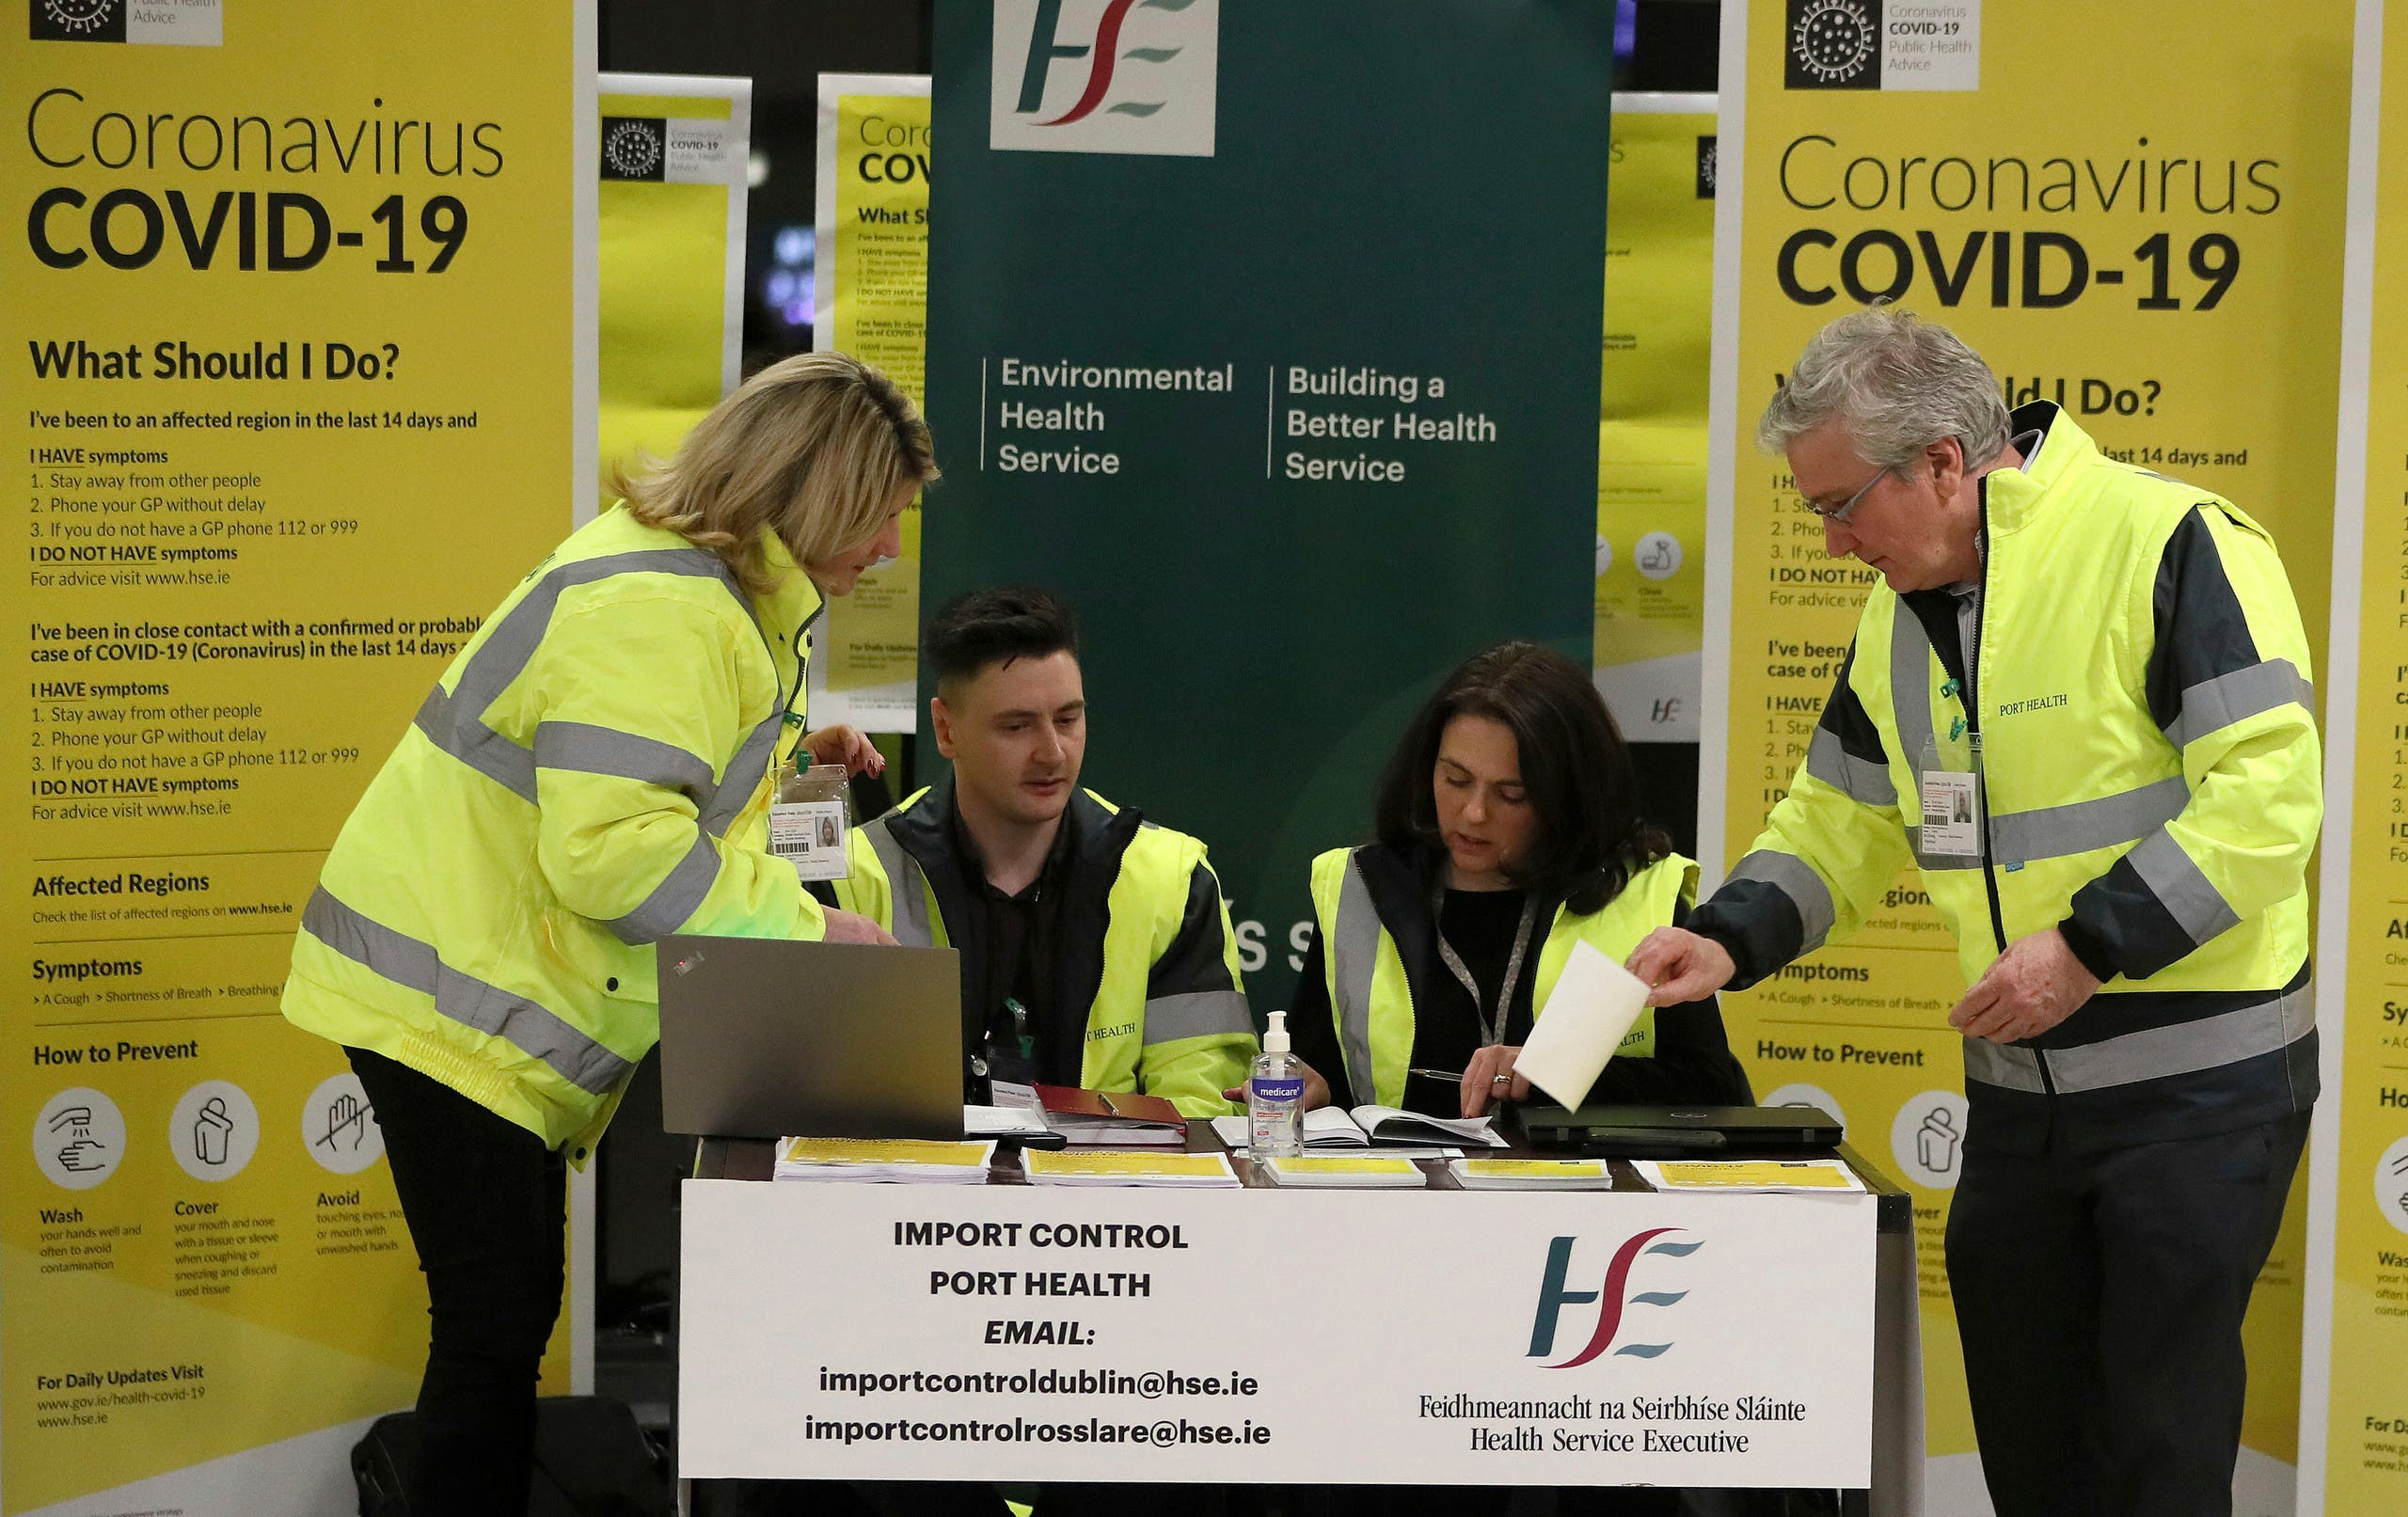 Staff conduct a public awareness campaign for COVID-19 in the baggage hall of Terminal 2 at Dublin Airport in Dublin on Feb. 28, 2020. (AP)